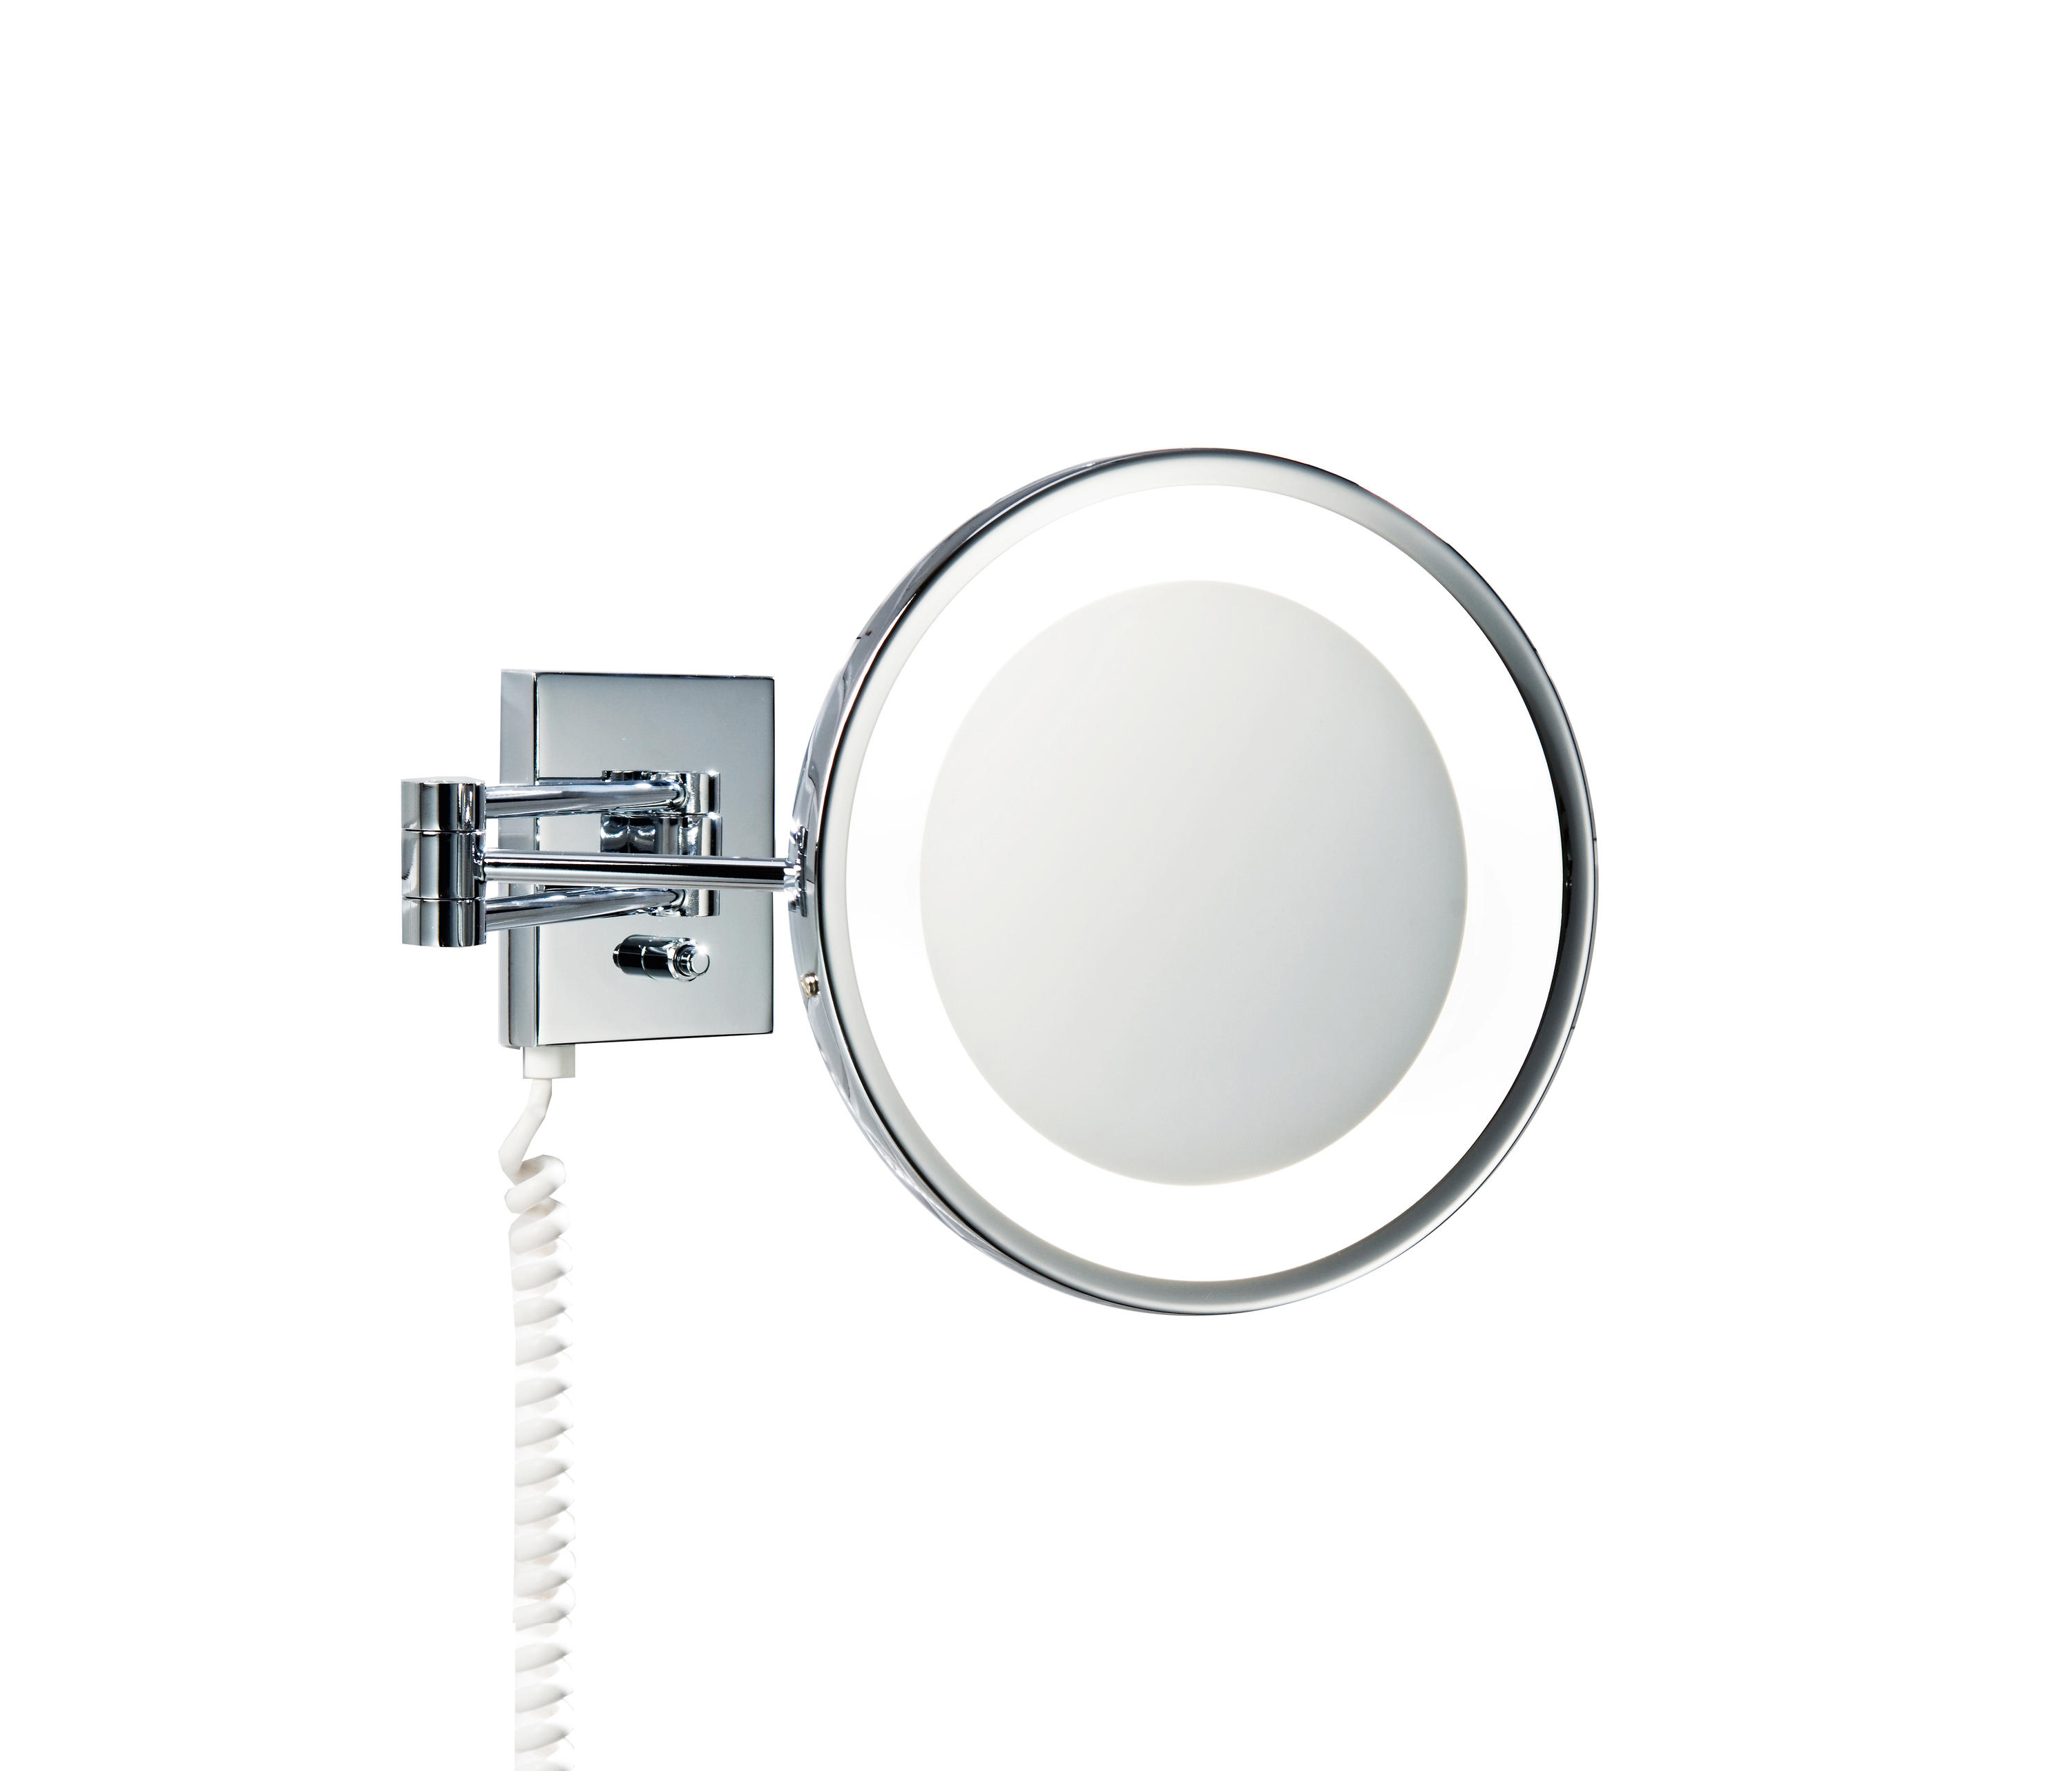 BS 25 PL   Shaving mirrors   DECOR WALTHER. SHAVING MIRRORS   High quality designer SHAVING MIRRORS   Architonic